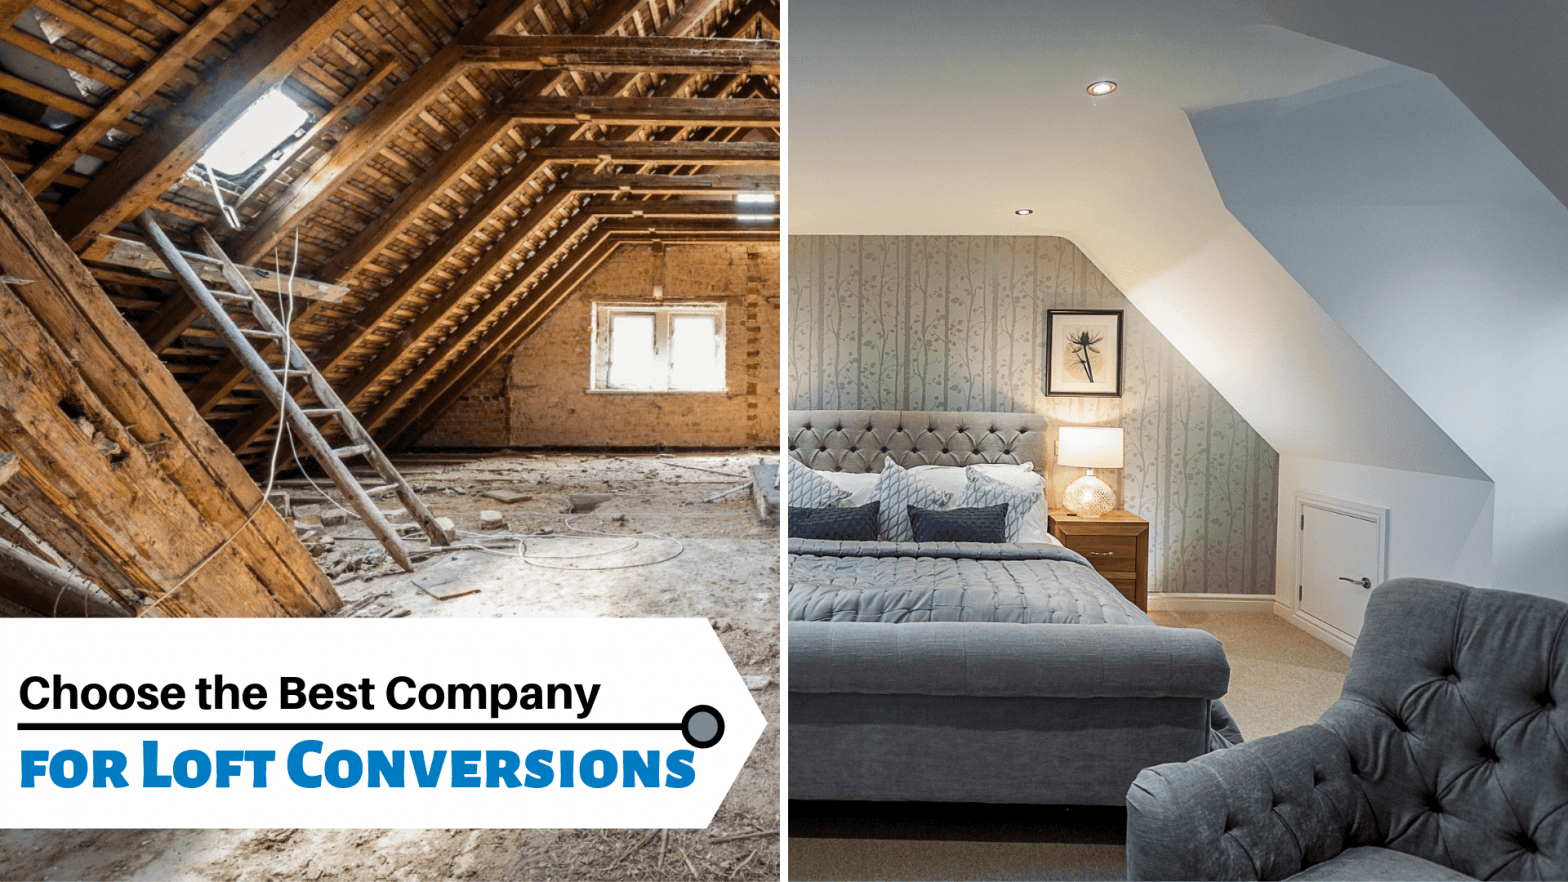 Useful Tips on How to Choose the Best Company for Loft Conversions